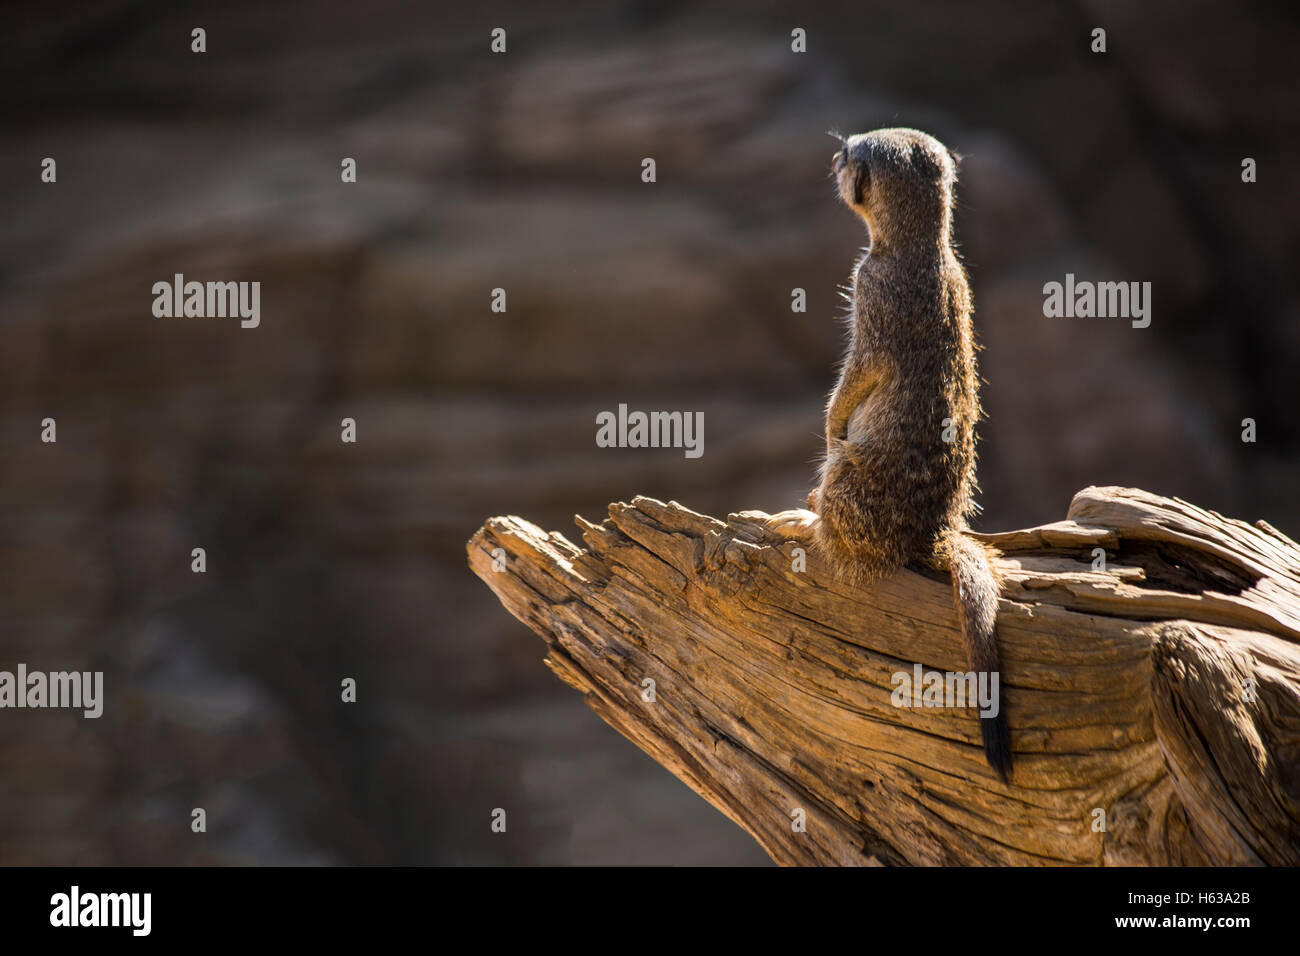 Sentry Meerkat (Suricata suricatta) keeps watch - Stock Image